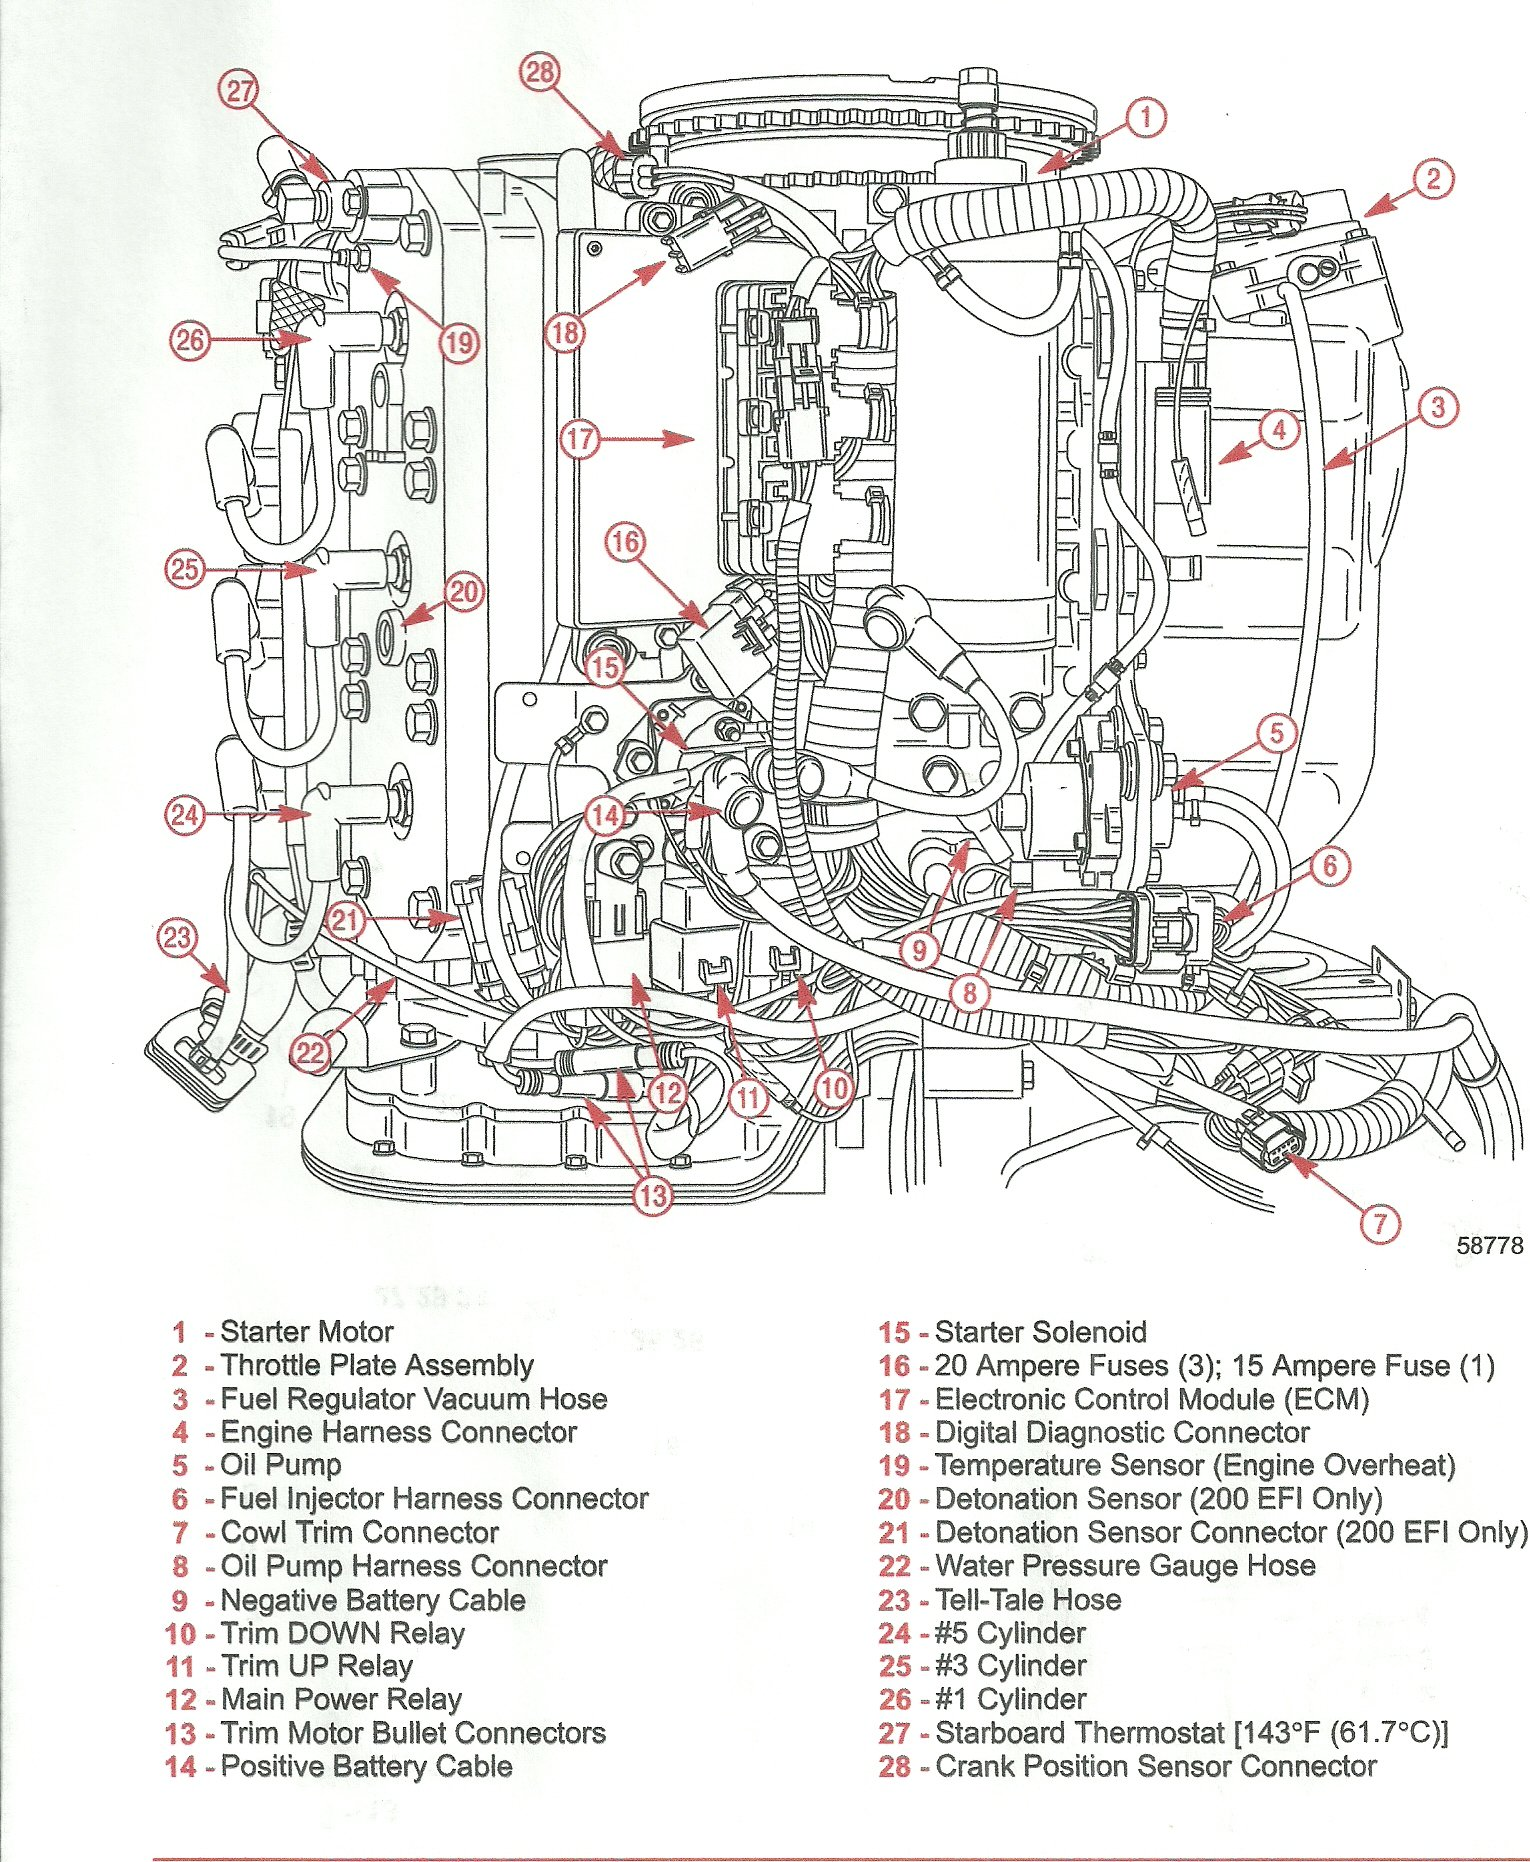 Mercury 150 Xr6 Diagram Electronic on engine fuel pump diagram